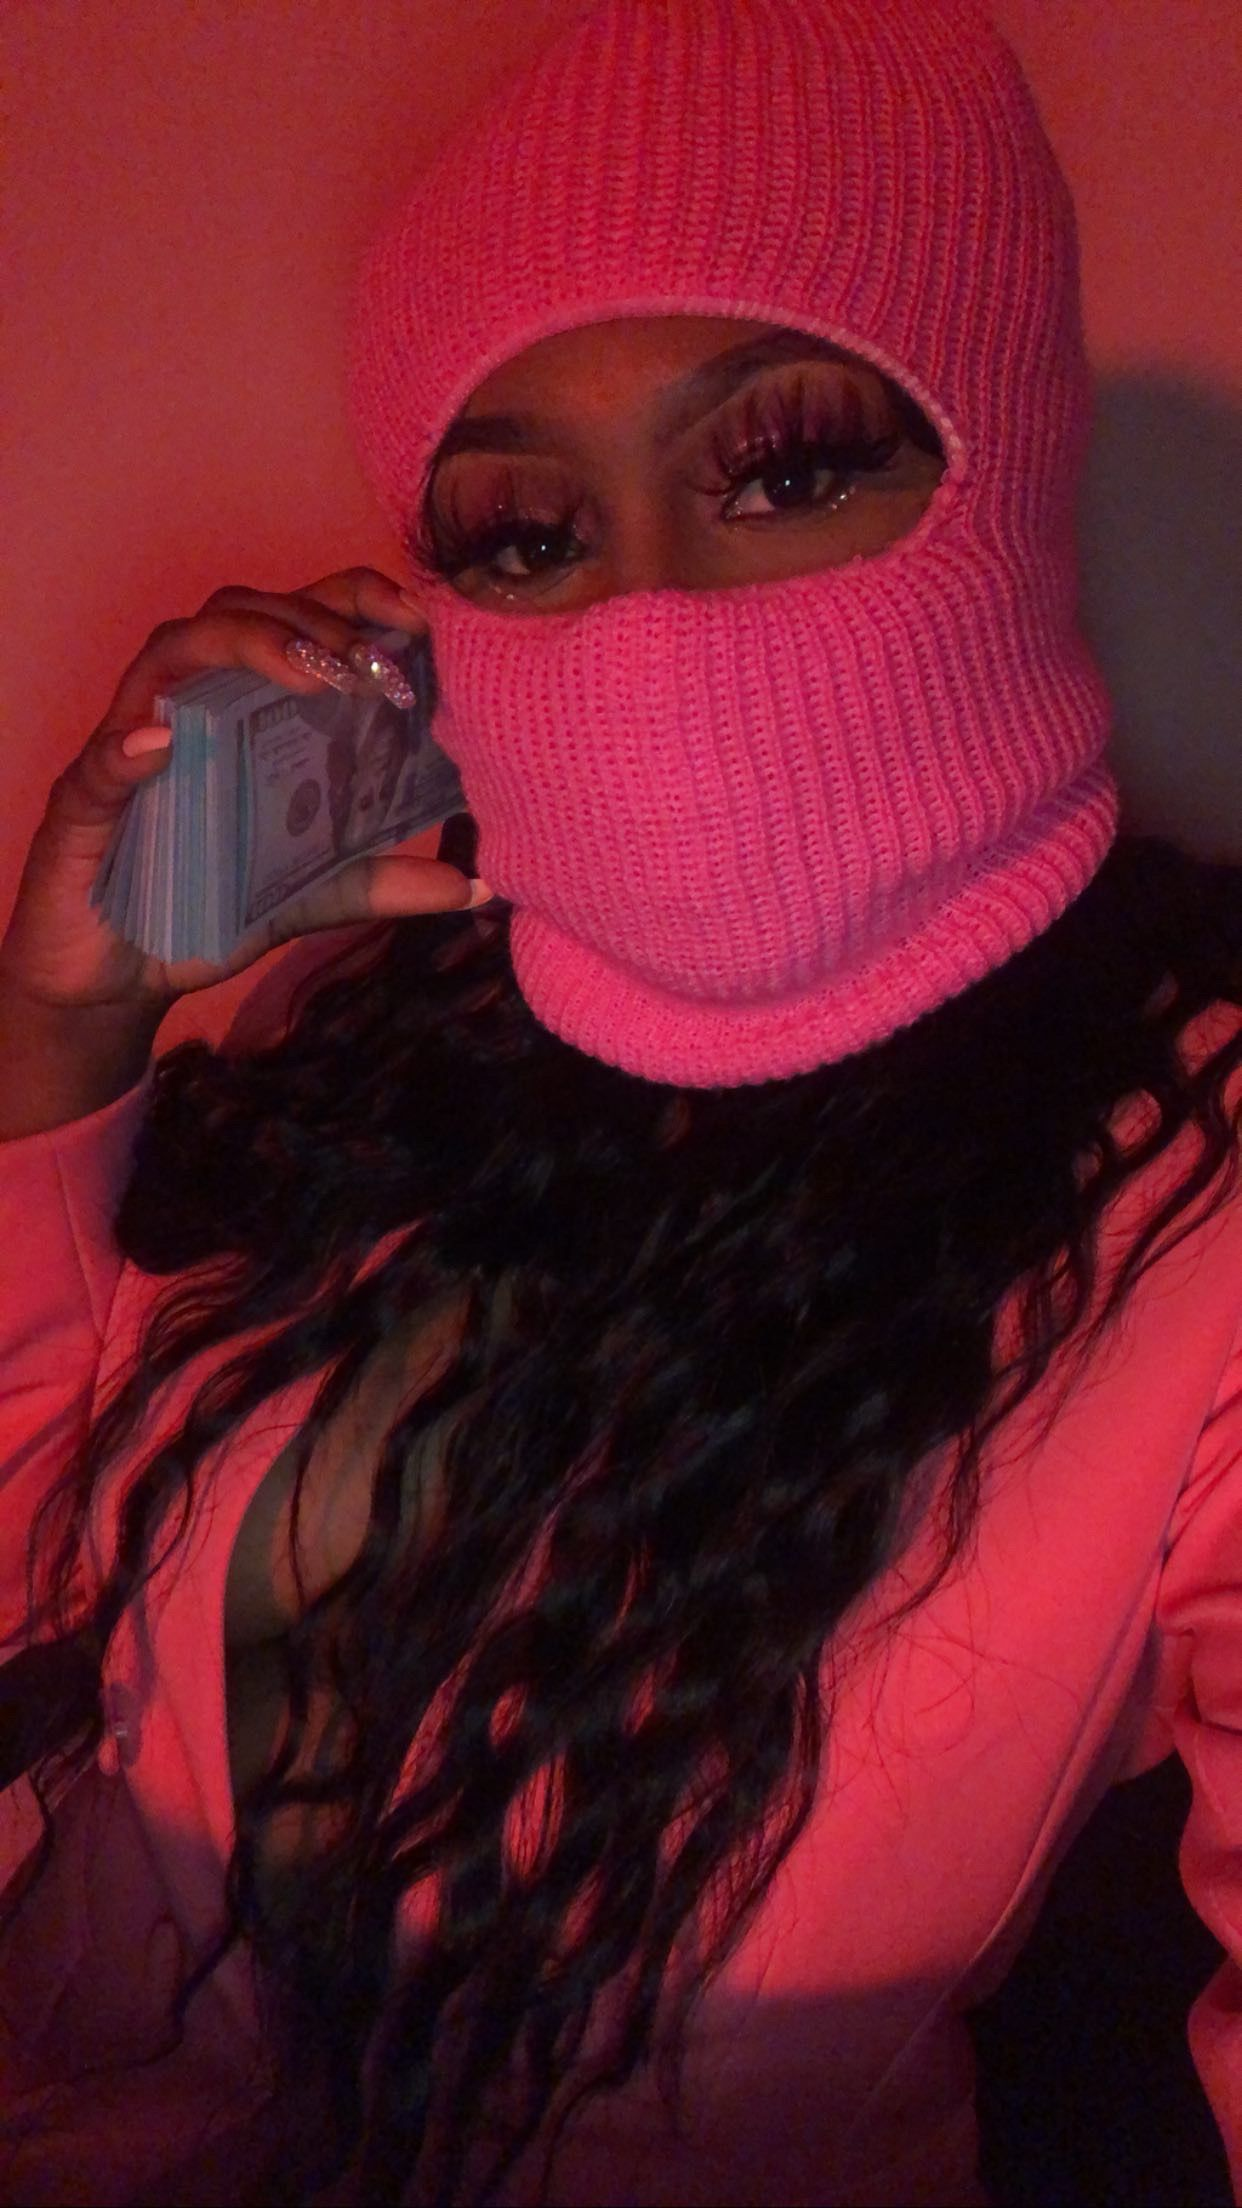 Hood Girl Wallpaper : wallpaper, Moneyy, Wallpaper,, Black, Aesthetic,, Aesthetic